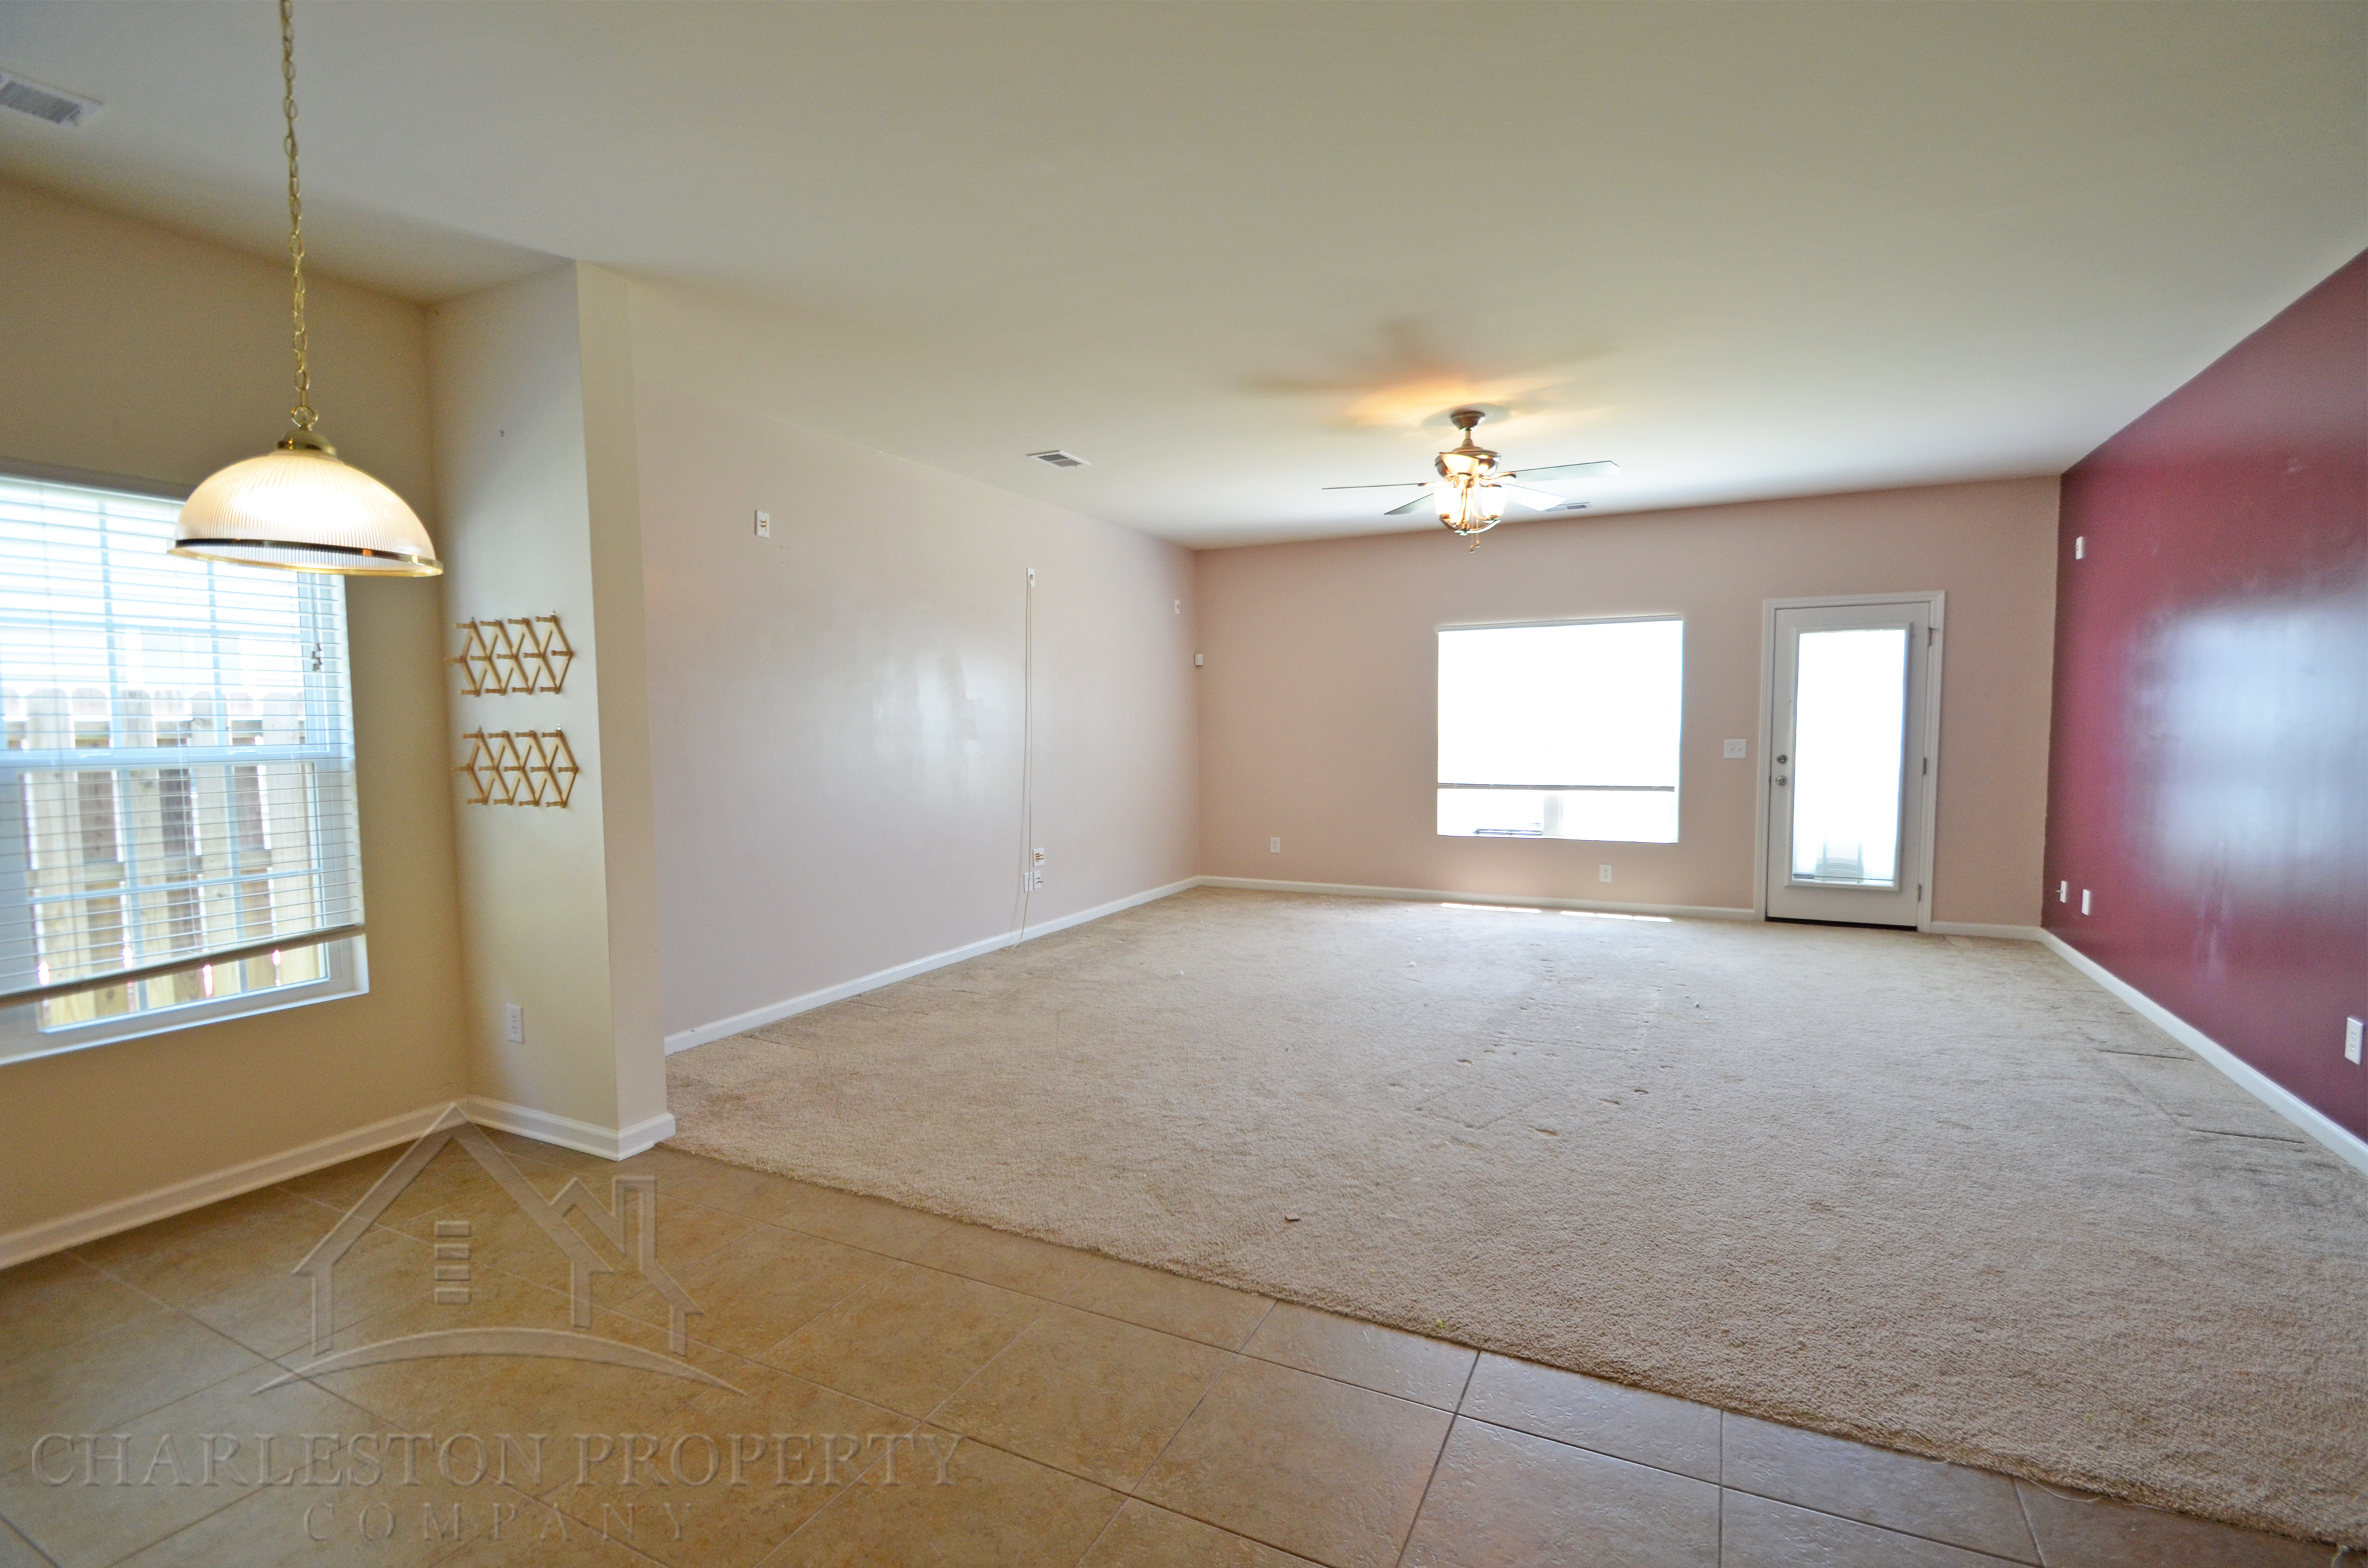 273 Mayfield Dr Goose Creek SC 29445-7320 - Photo 3